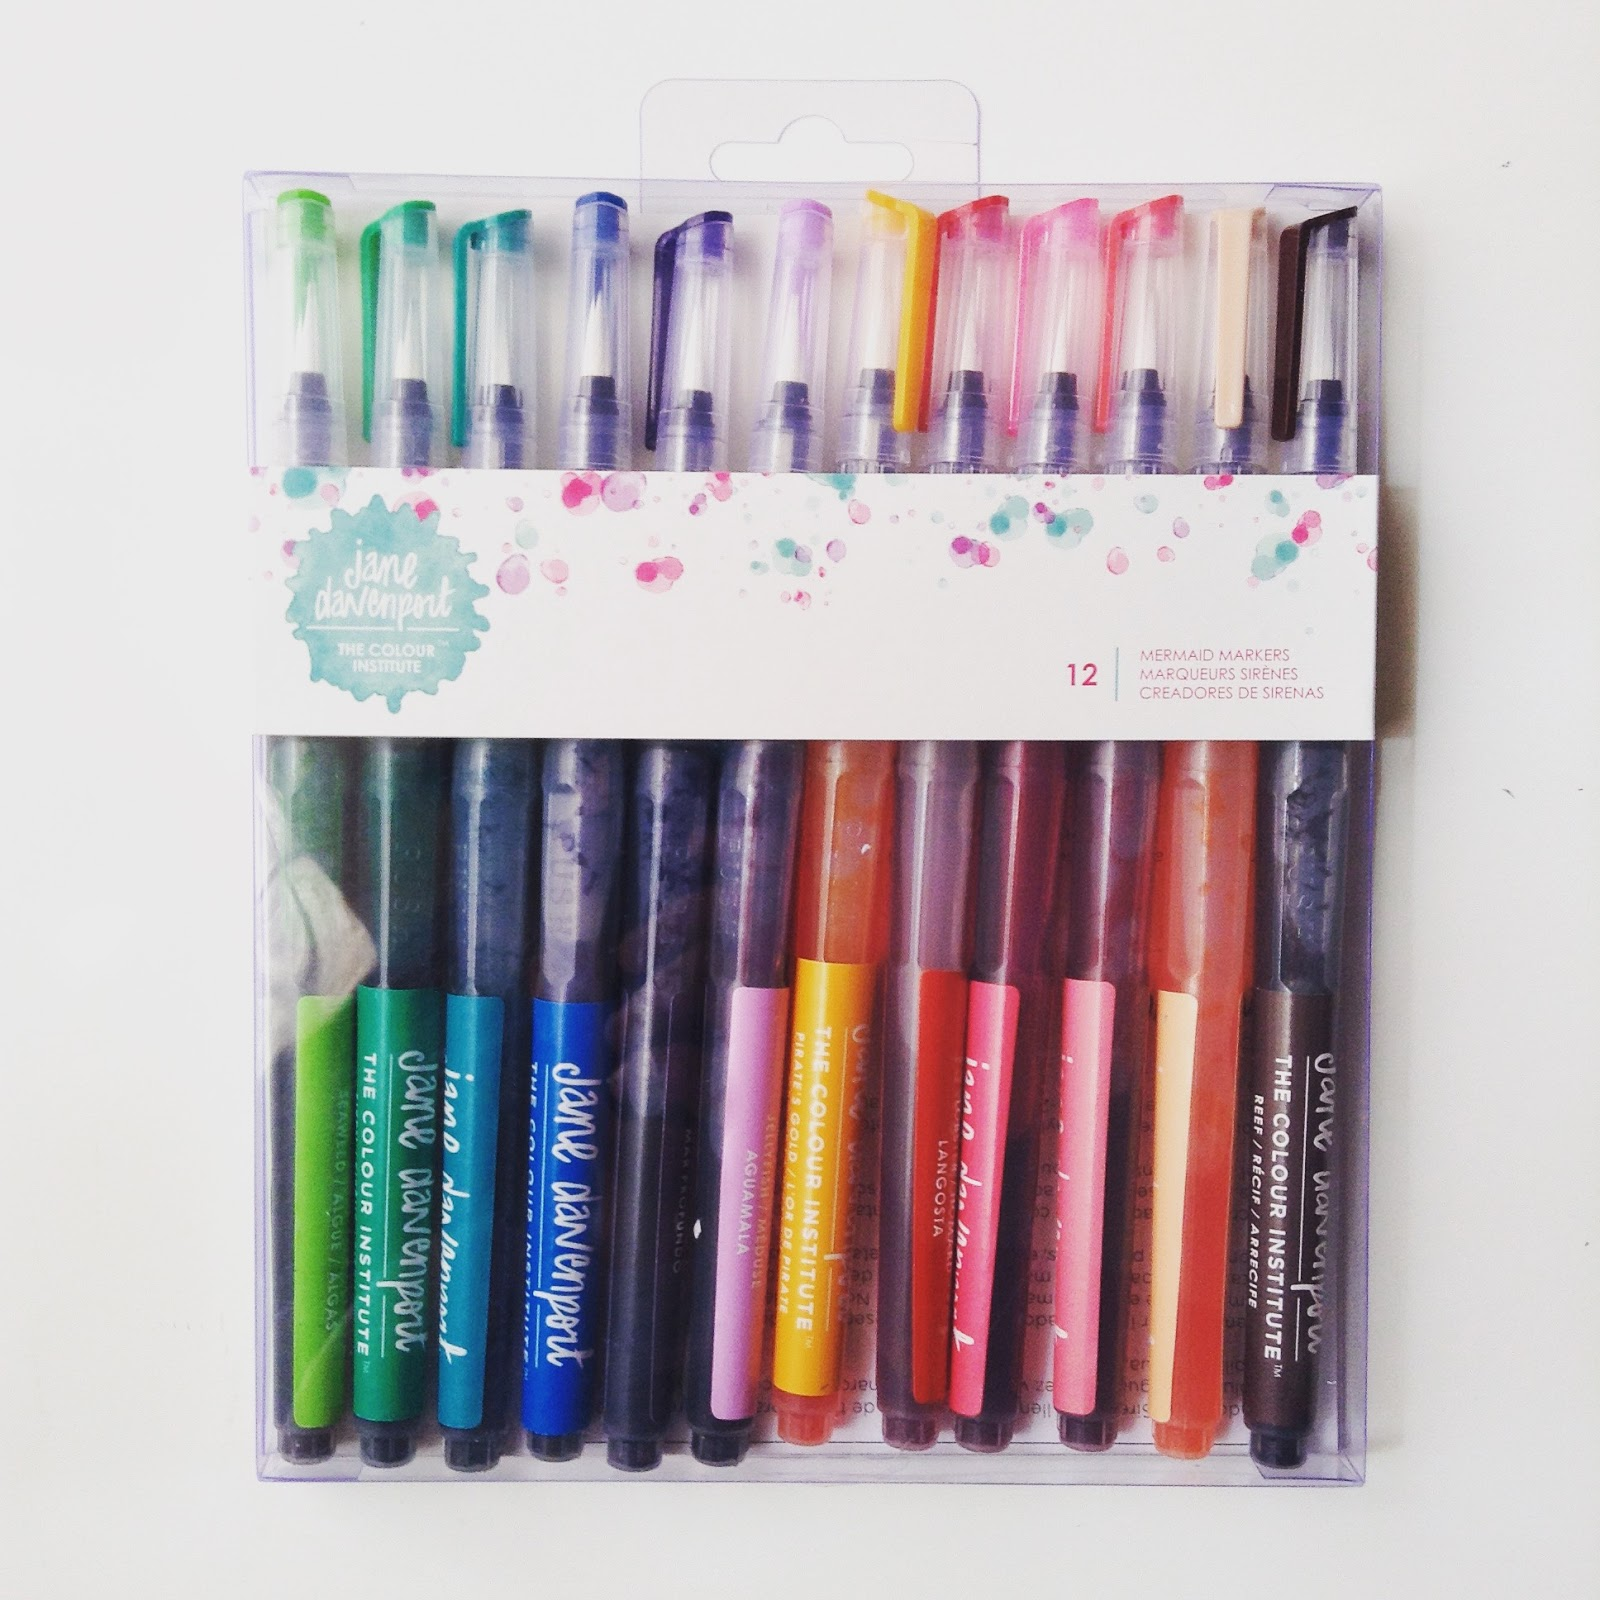 The Jane Davenport Mermaid Markers Set Comes With 12 Pre Filled Bright  Watercolors In Aqua Brushes. The Colors Are Extremely Vibrant And Once The  ...